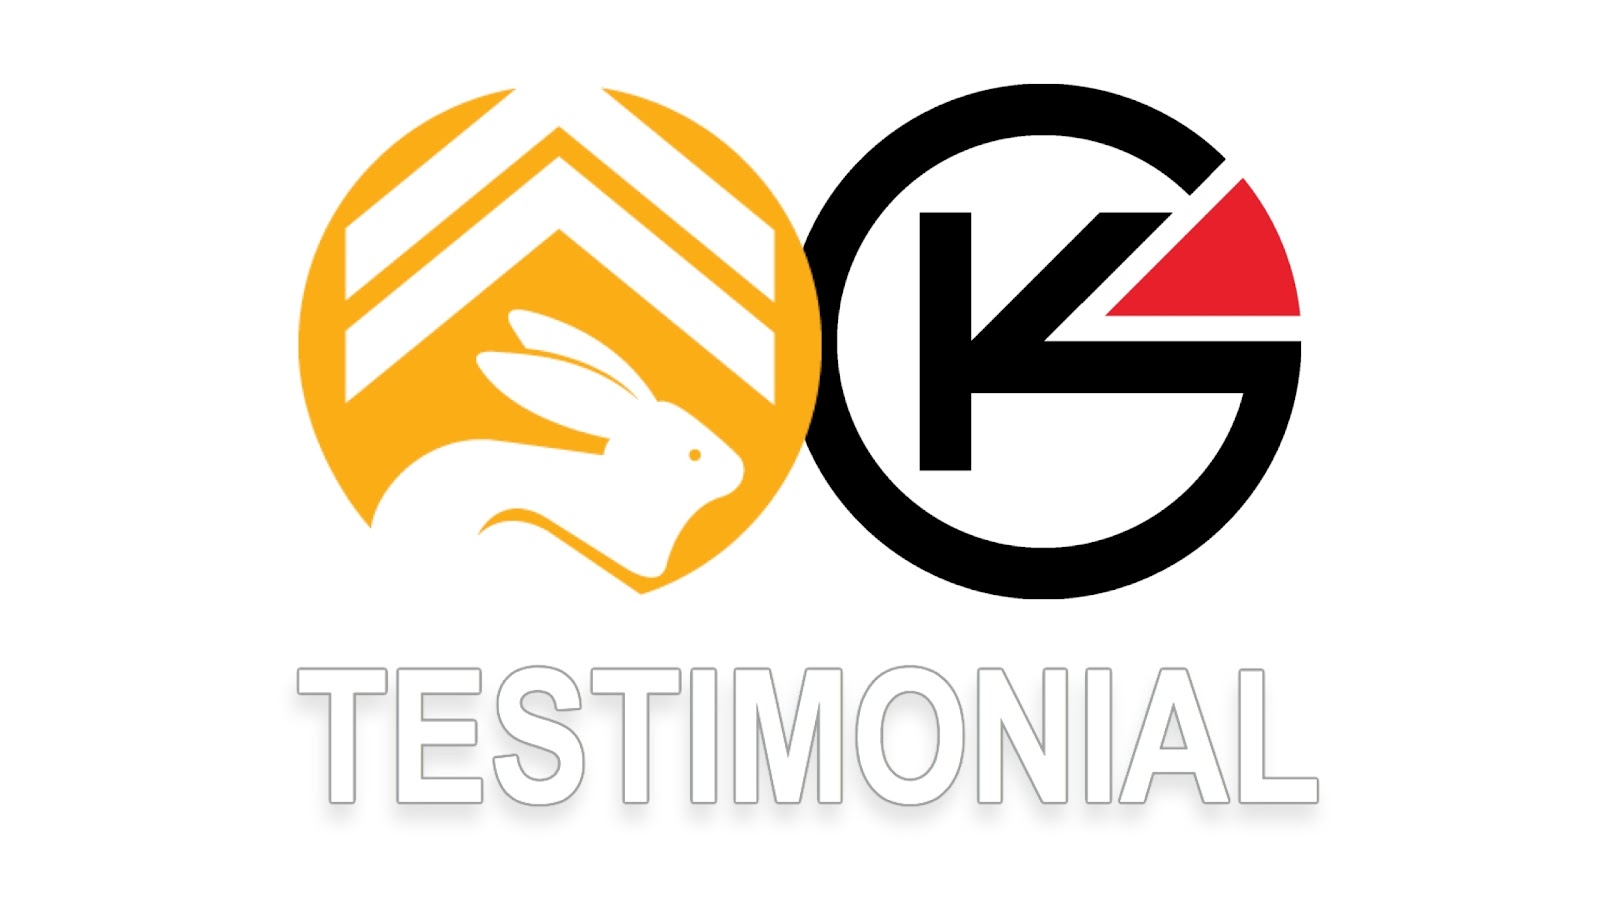 Kotton Grammer Review and Testimonial Image.jpeg